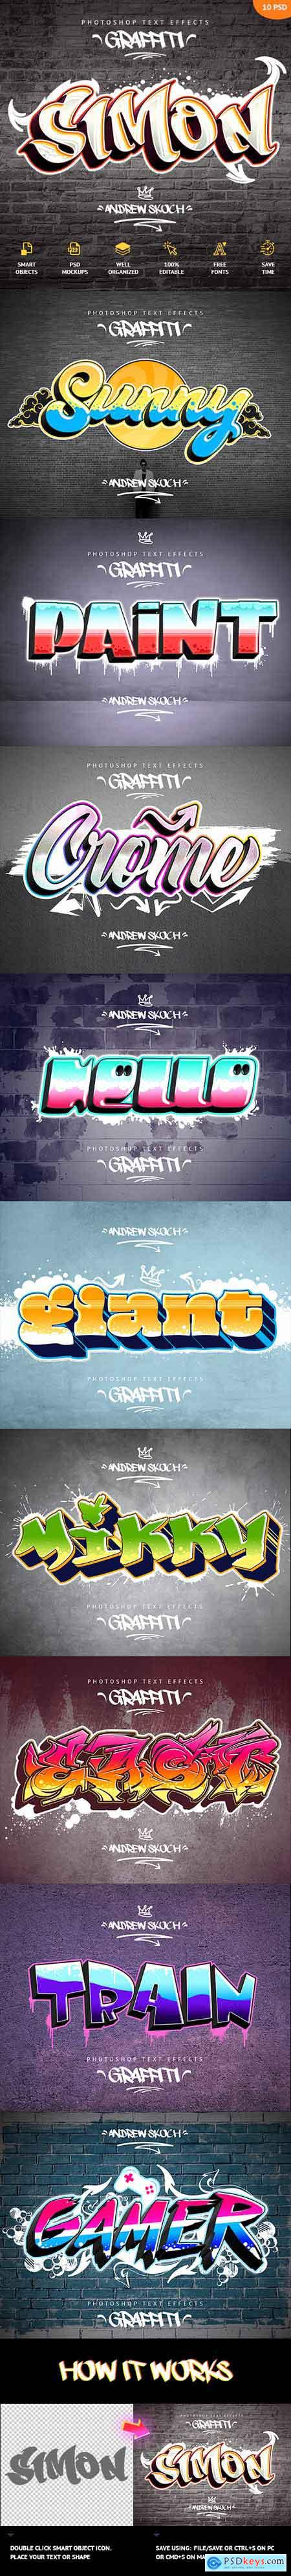 Graffiti Text Effects - 10 PSD